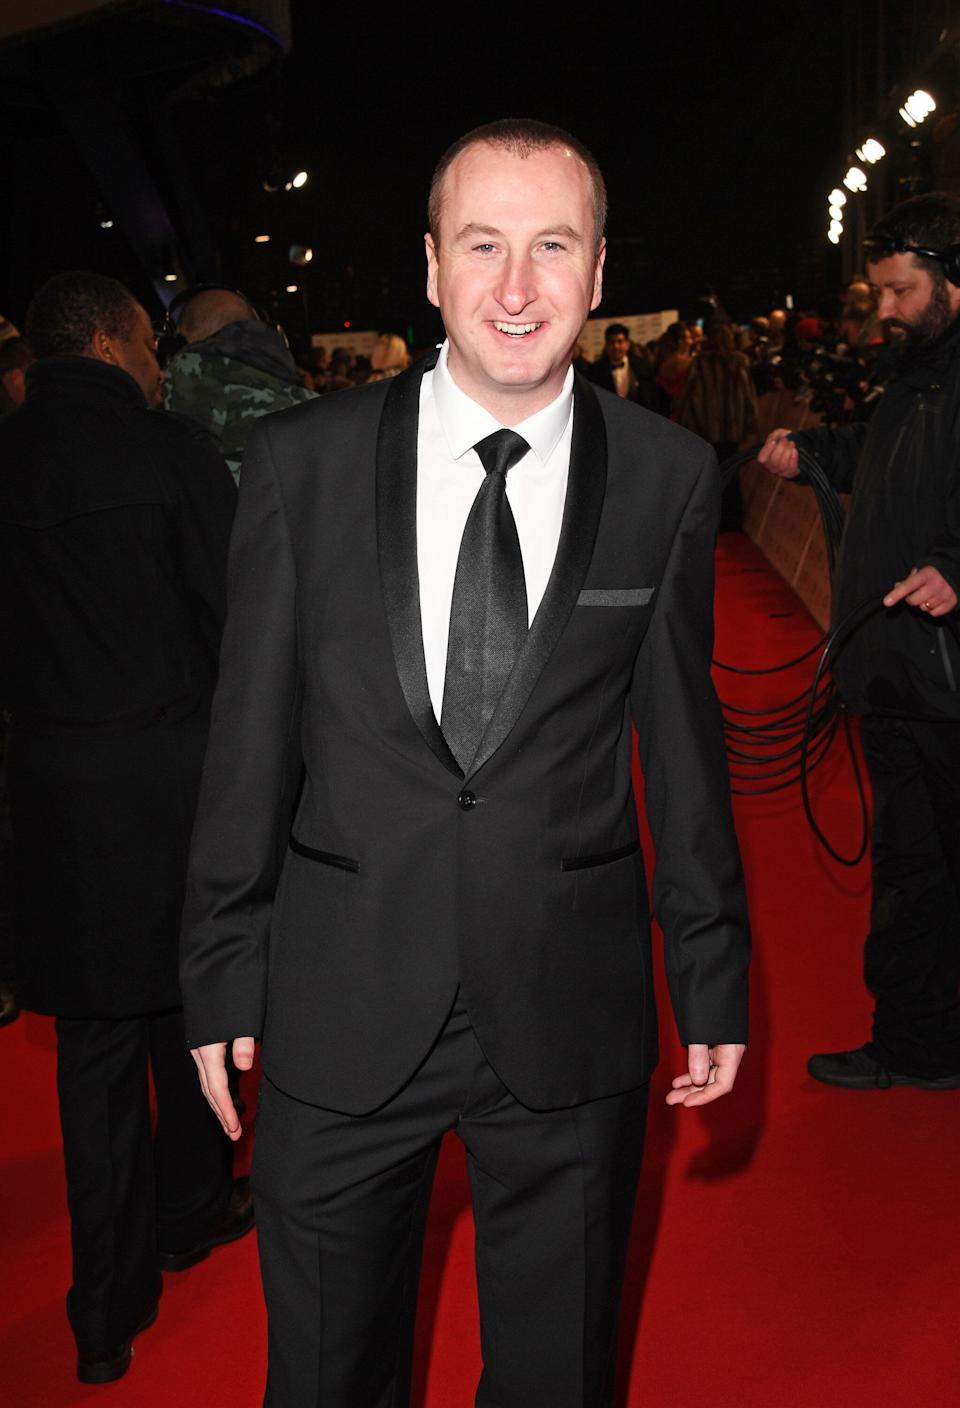 <strong>Known for:</strong>Playing Kirk Sutherland in Coronation Street<br /><br />There's always a Corrie star on the line-up, isn't there? And while Kym Marsh and Lucy Fallon were both reported to be taking part, it seems producers went with Andy in the end.